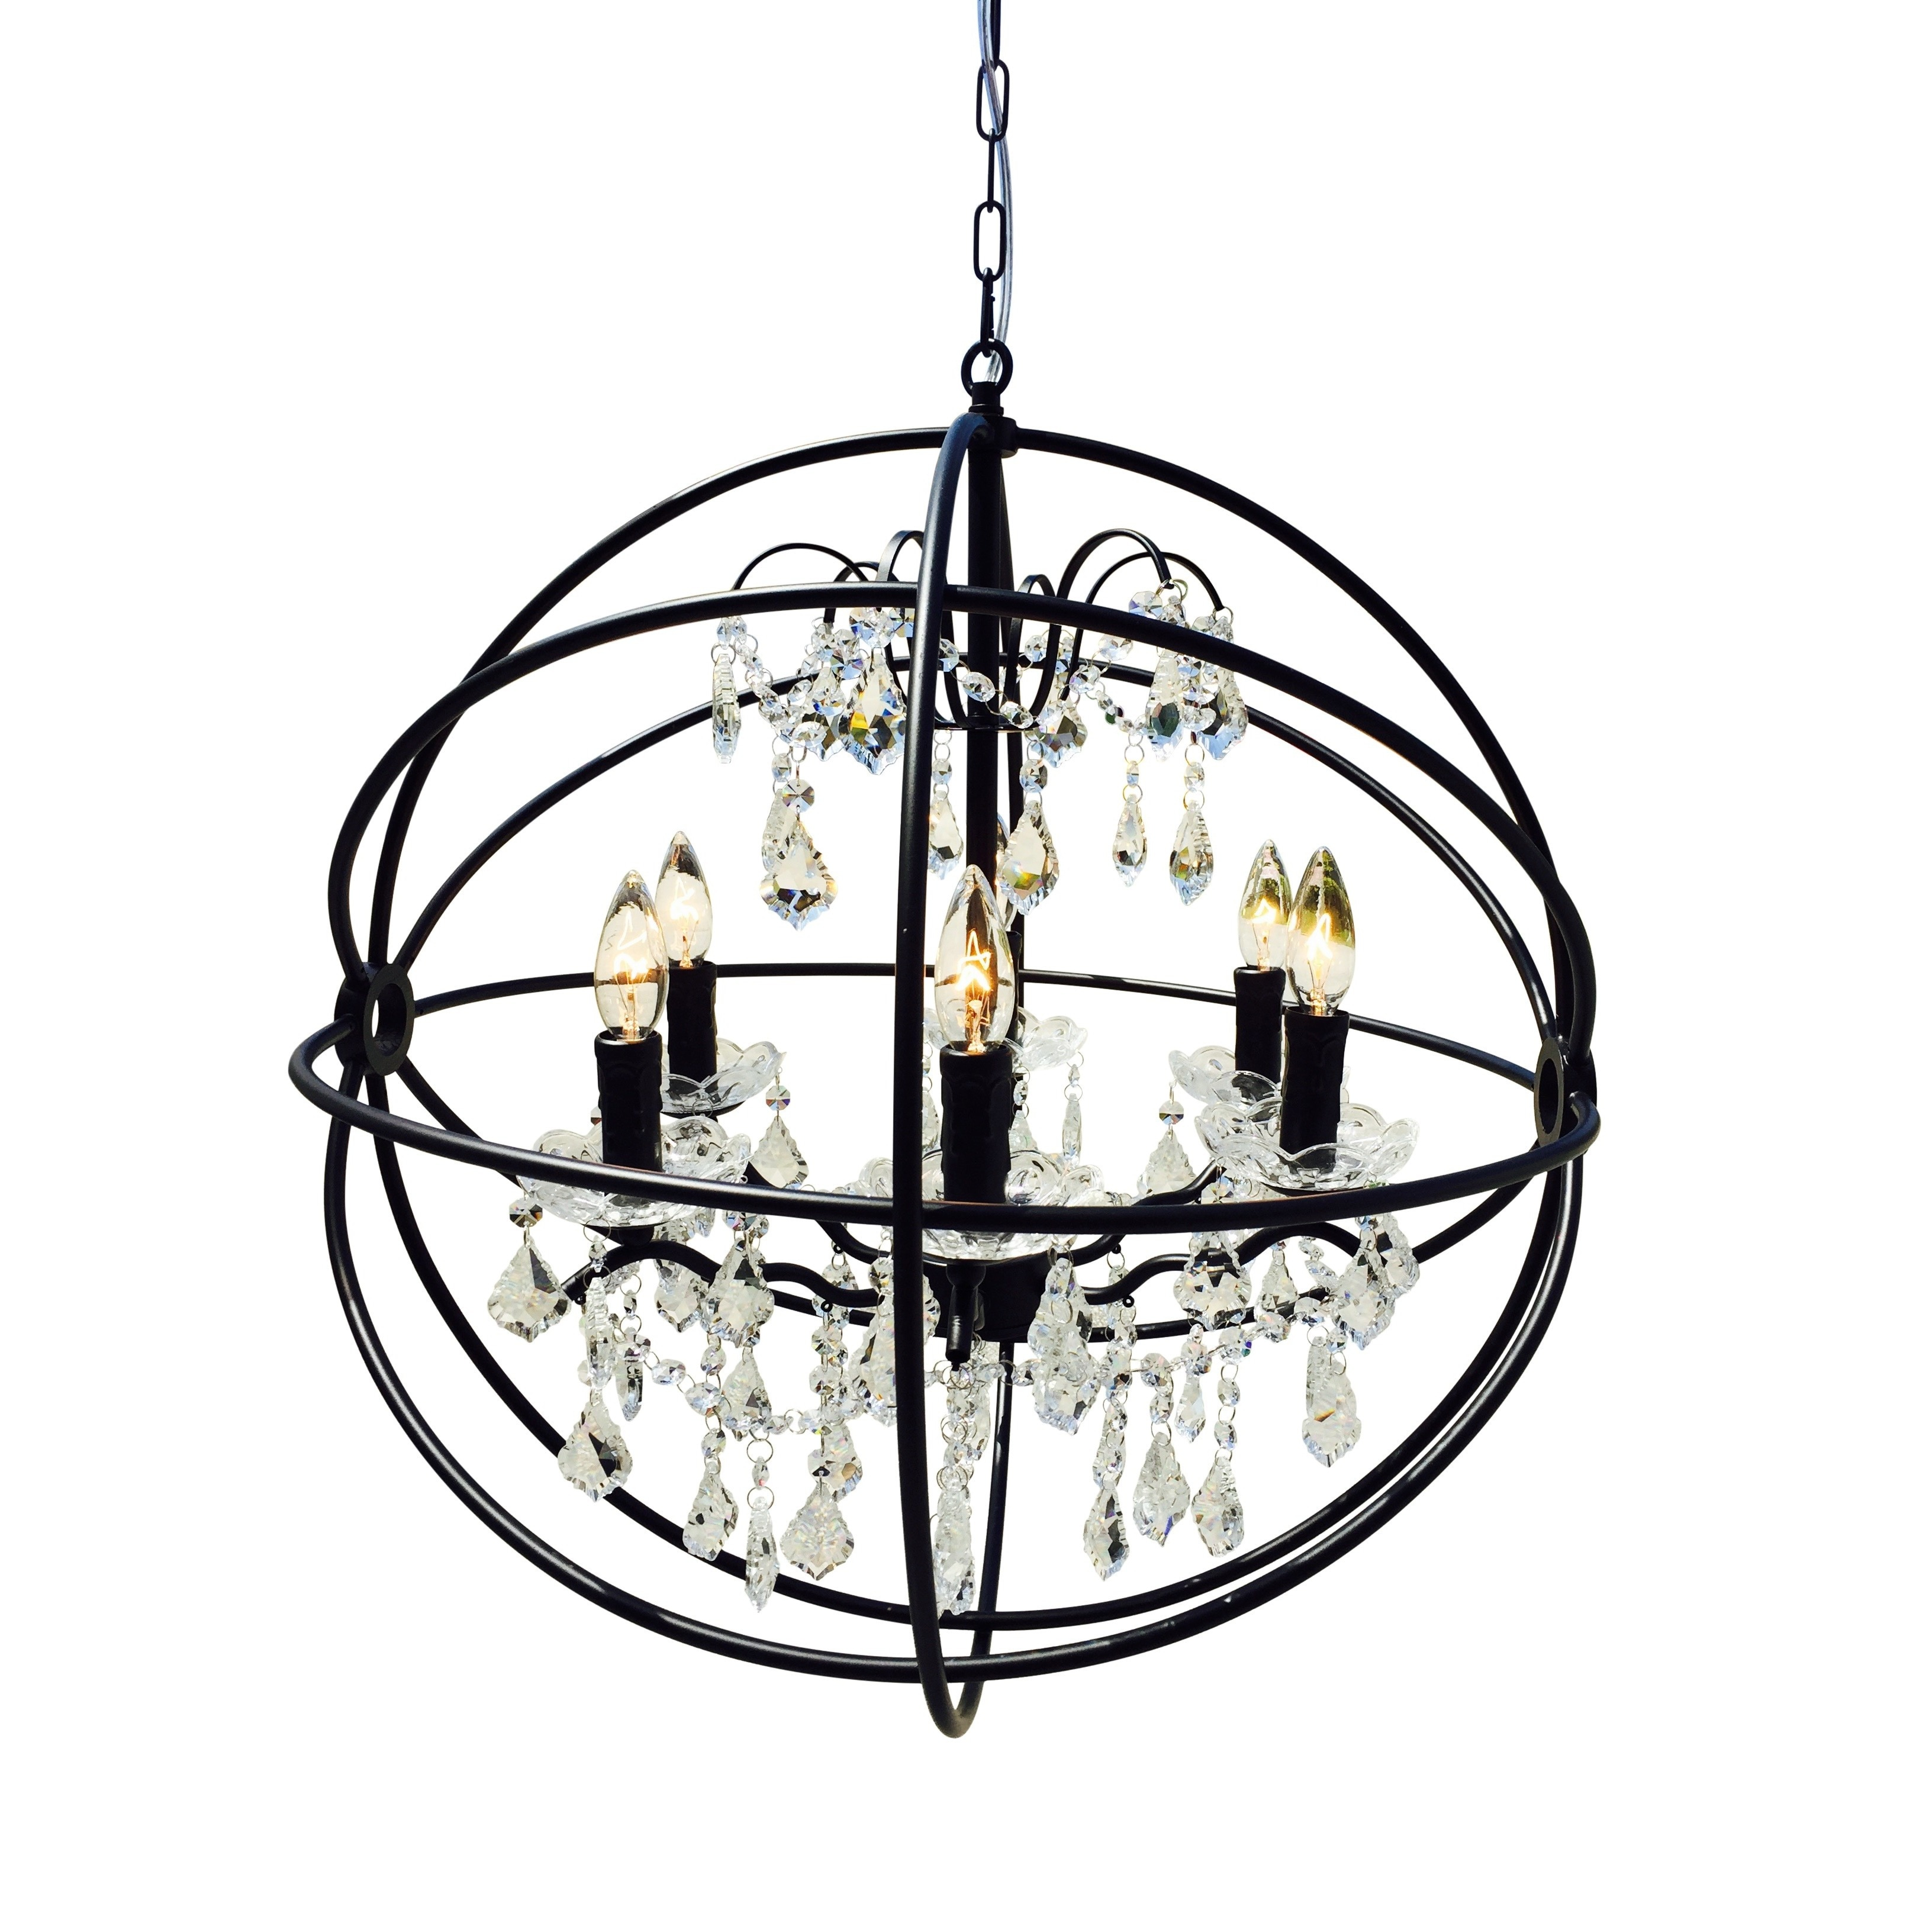 Black Wrought Iron Orb Chandelier (Wrought Iron Orb Chand...